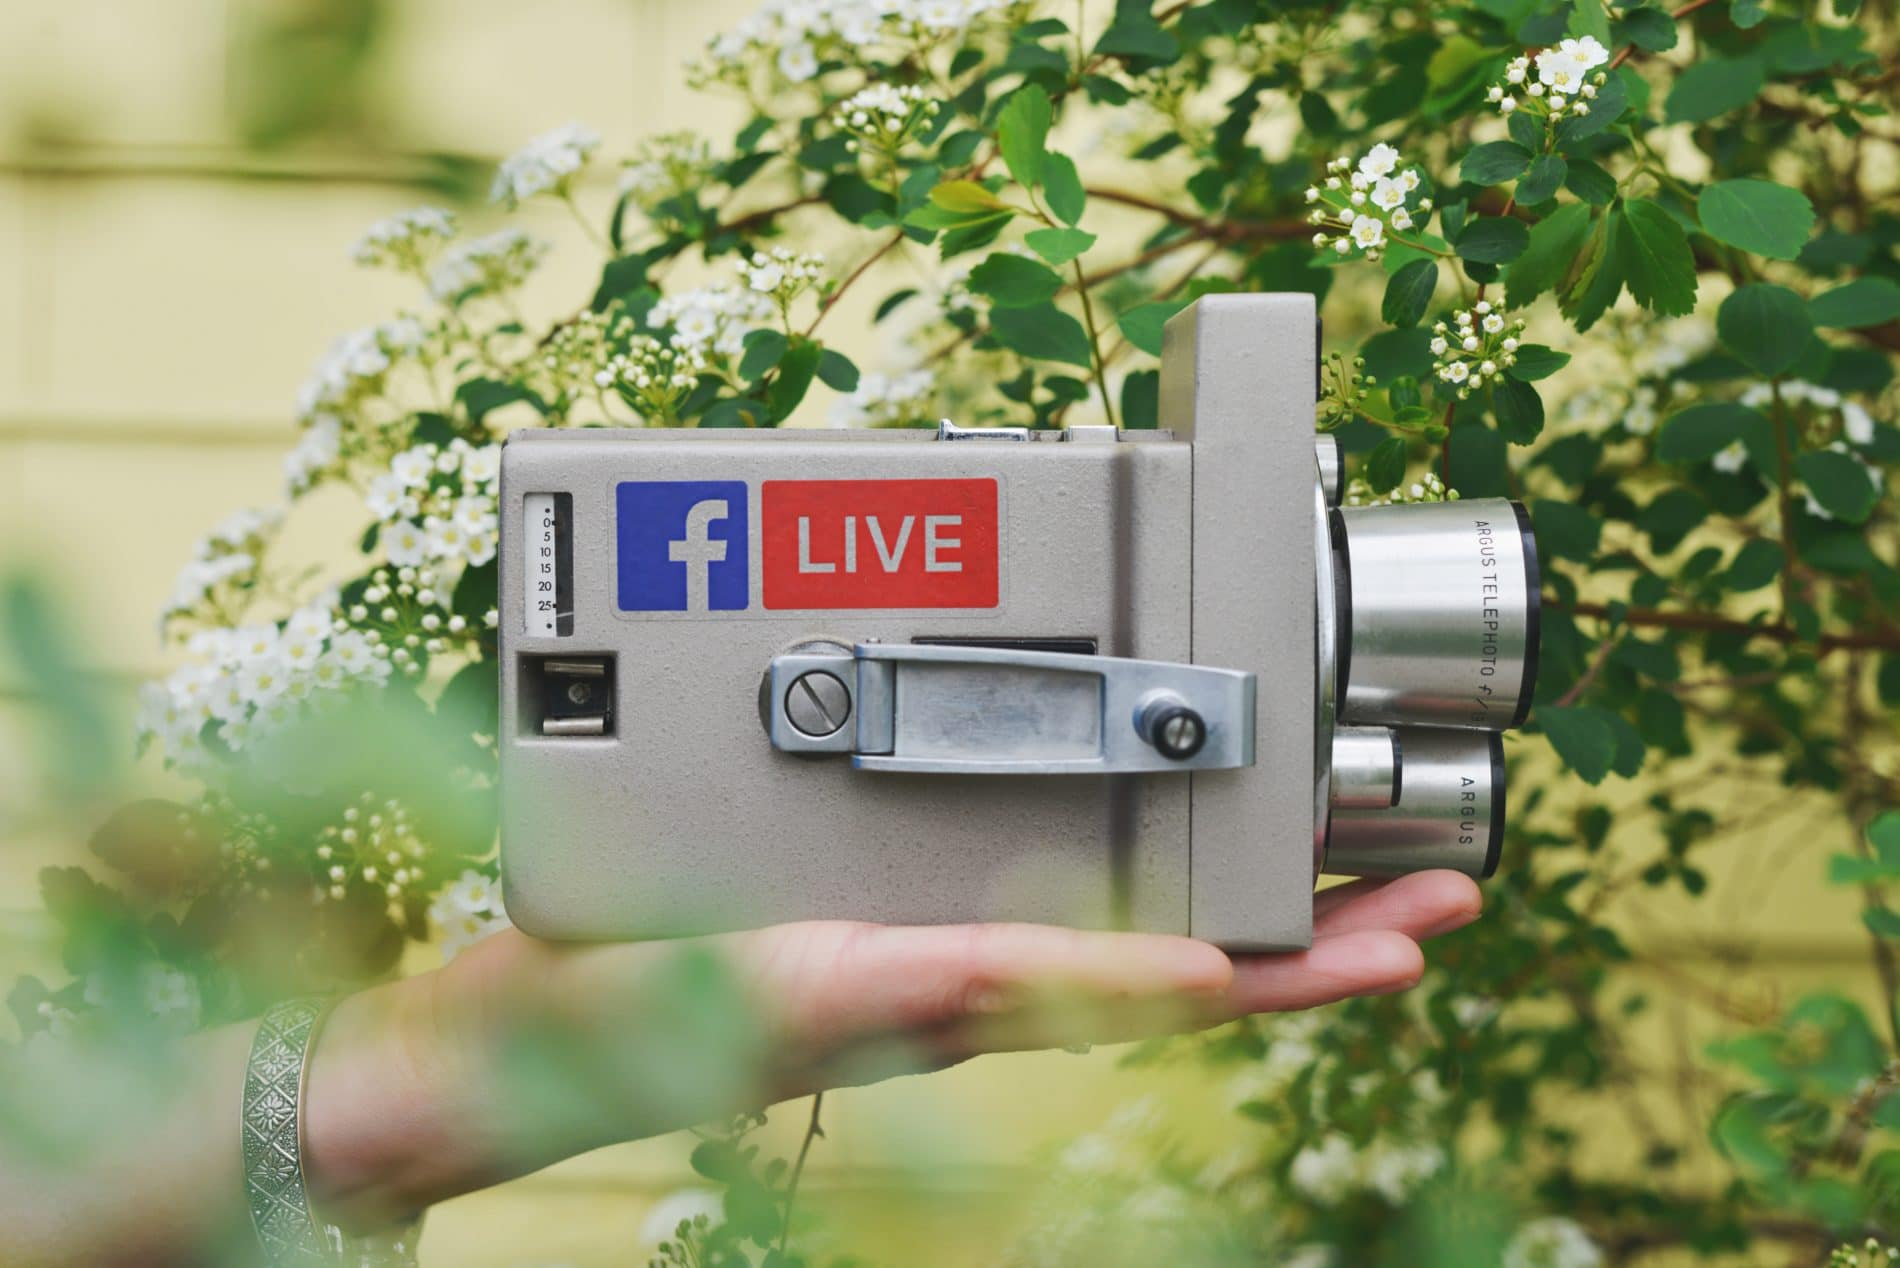 A hand holds a video camera with the logos for Facebook Live